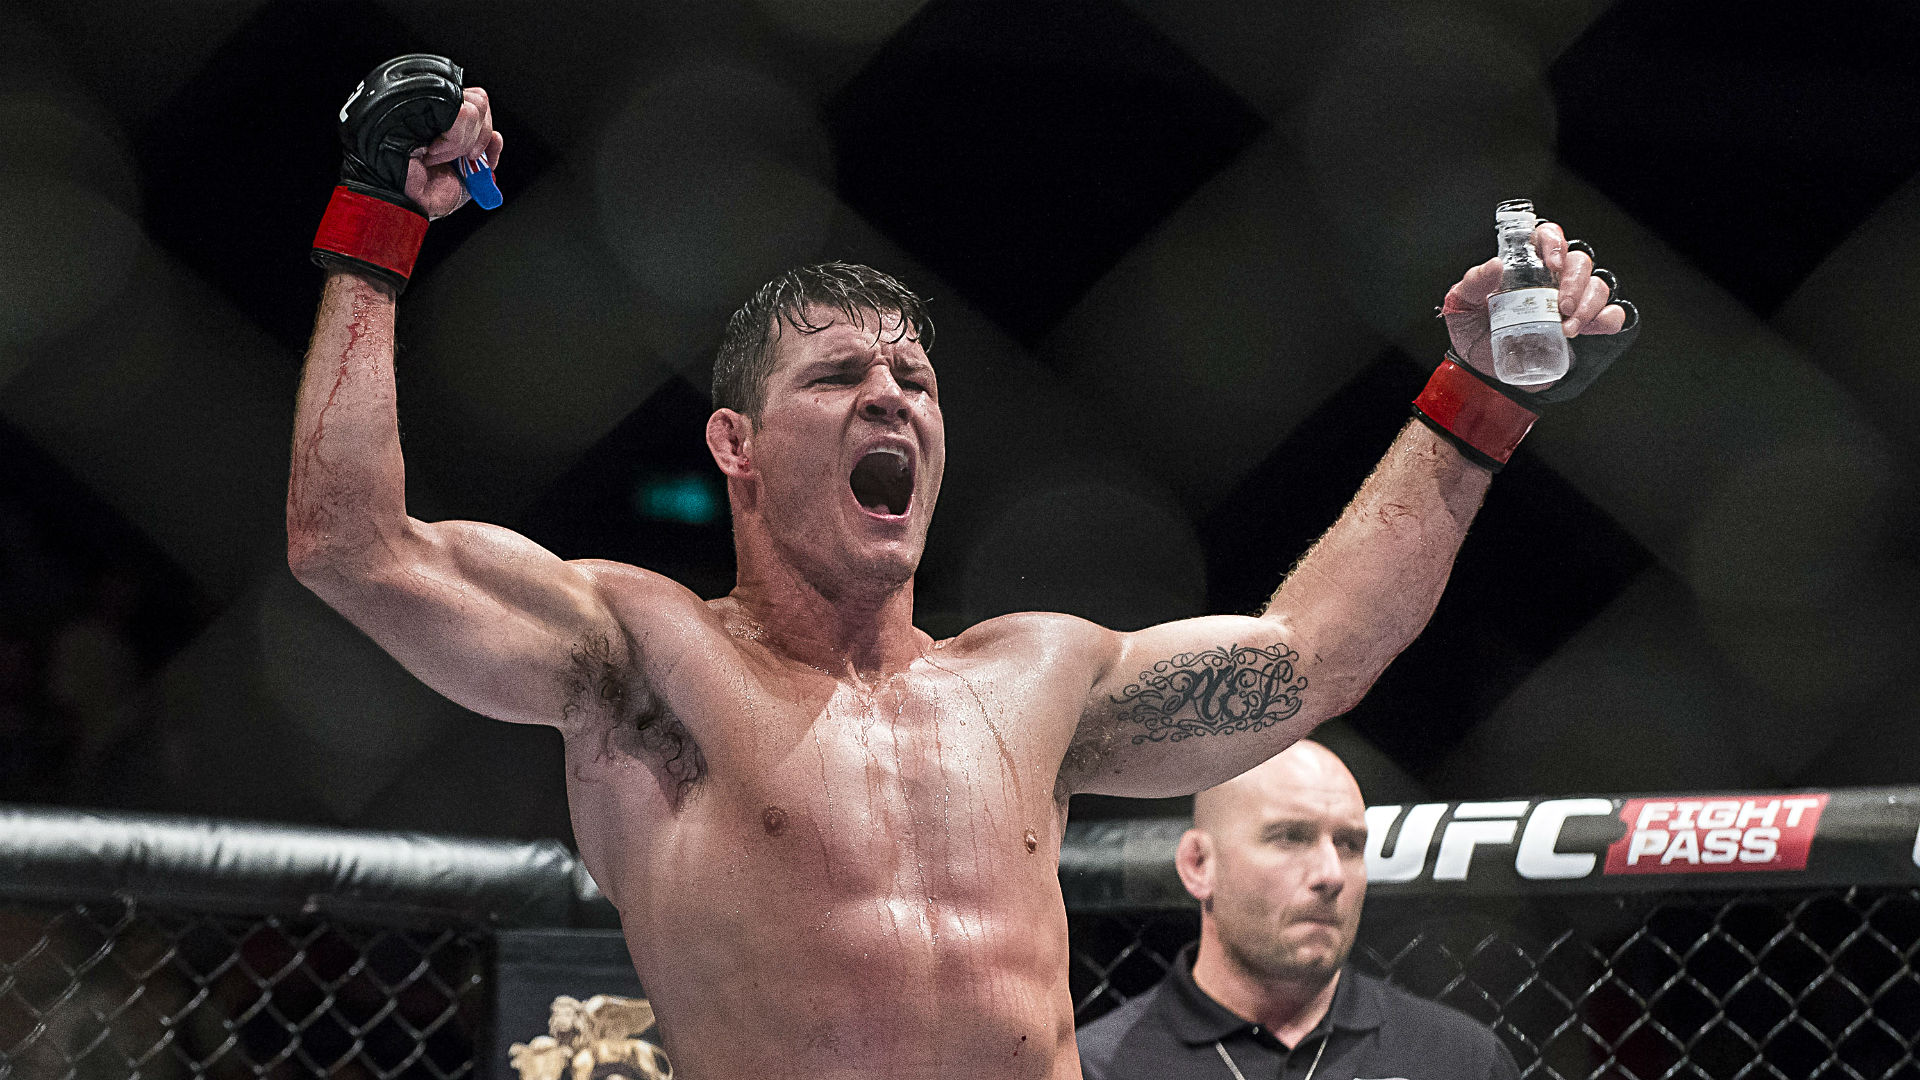 UFC odds and picks – Early money moves Bisping vs. Leites to a pick 'em